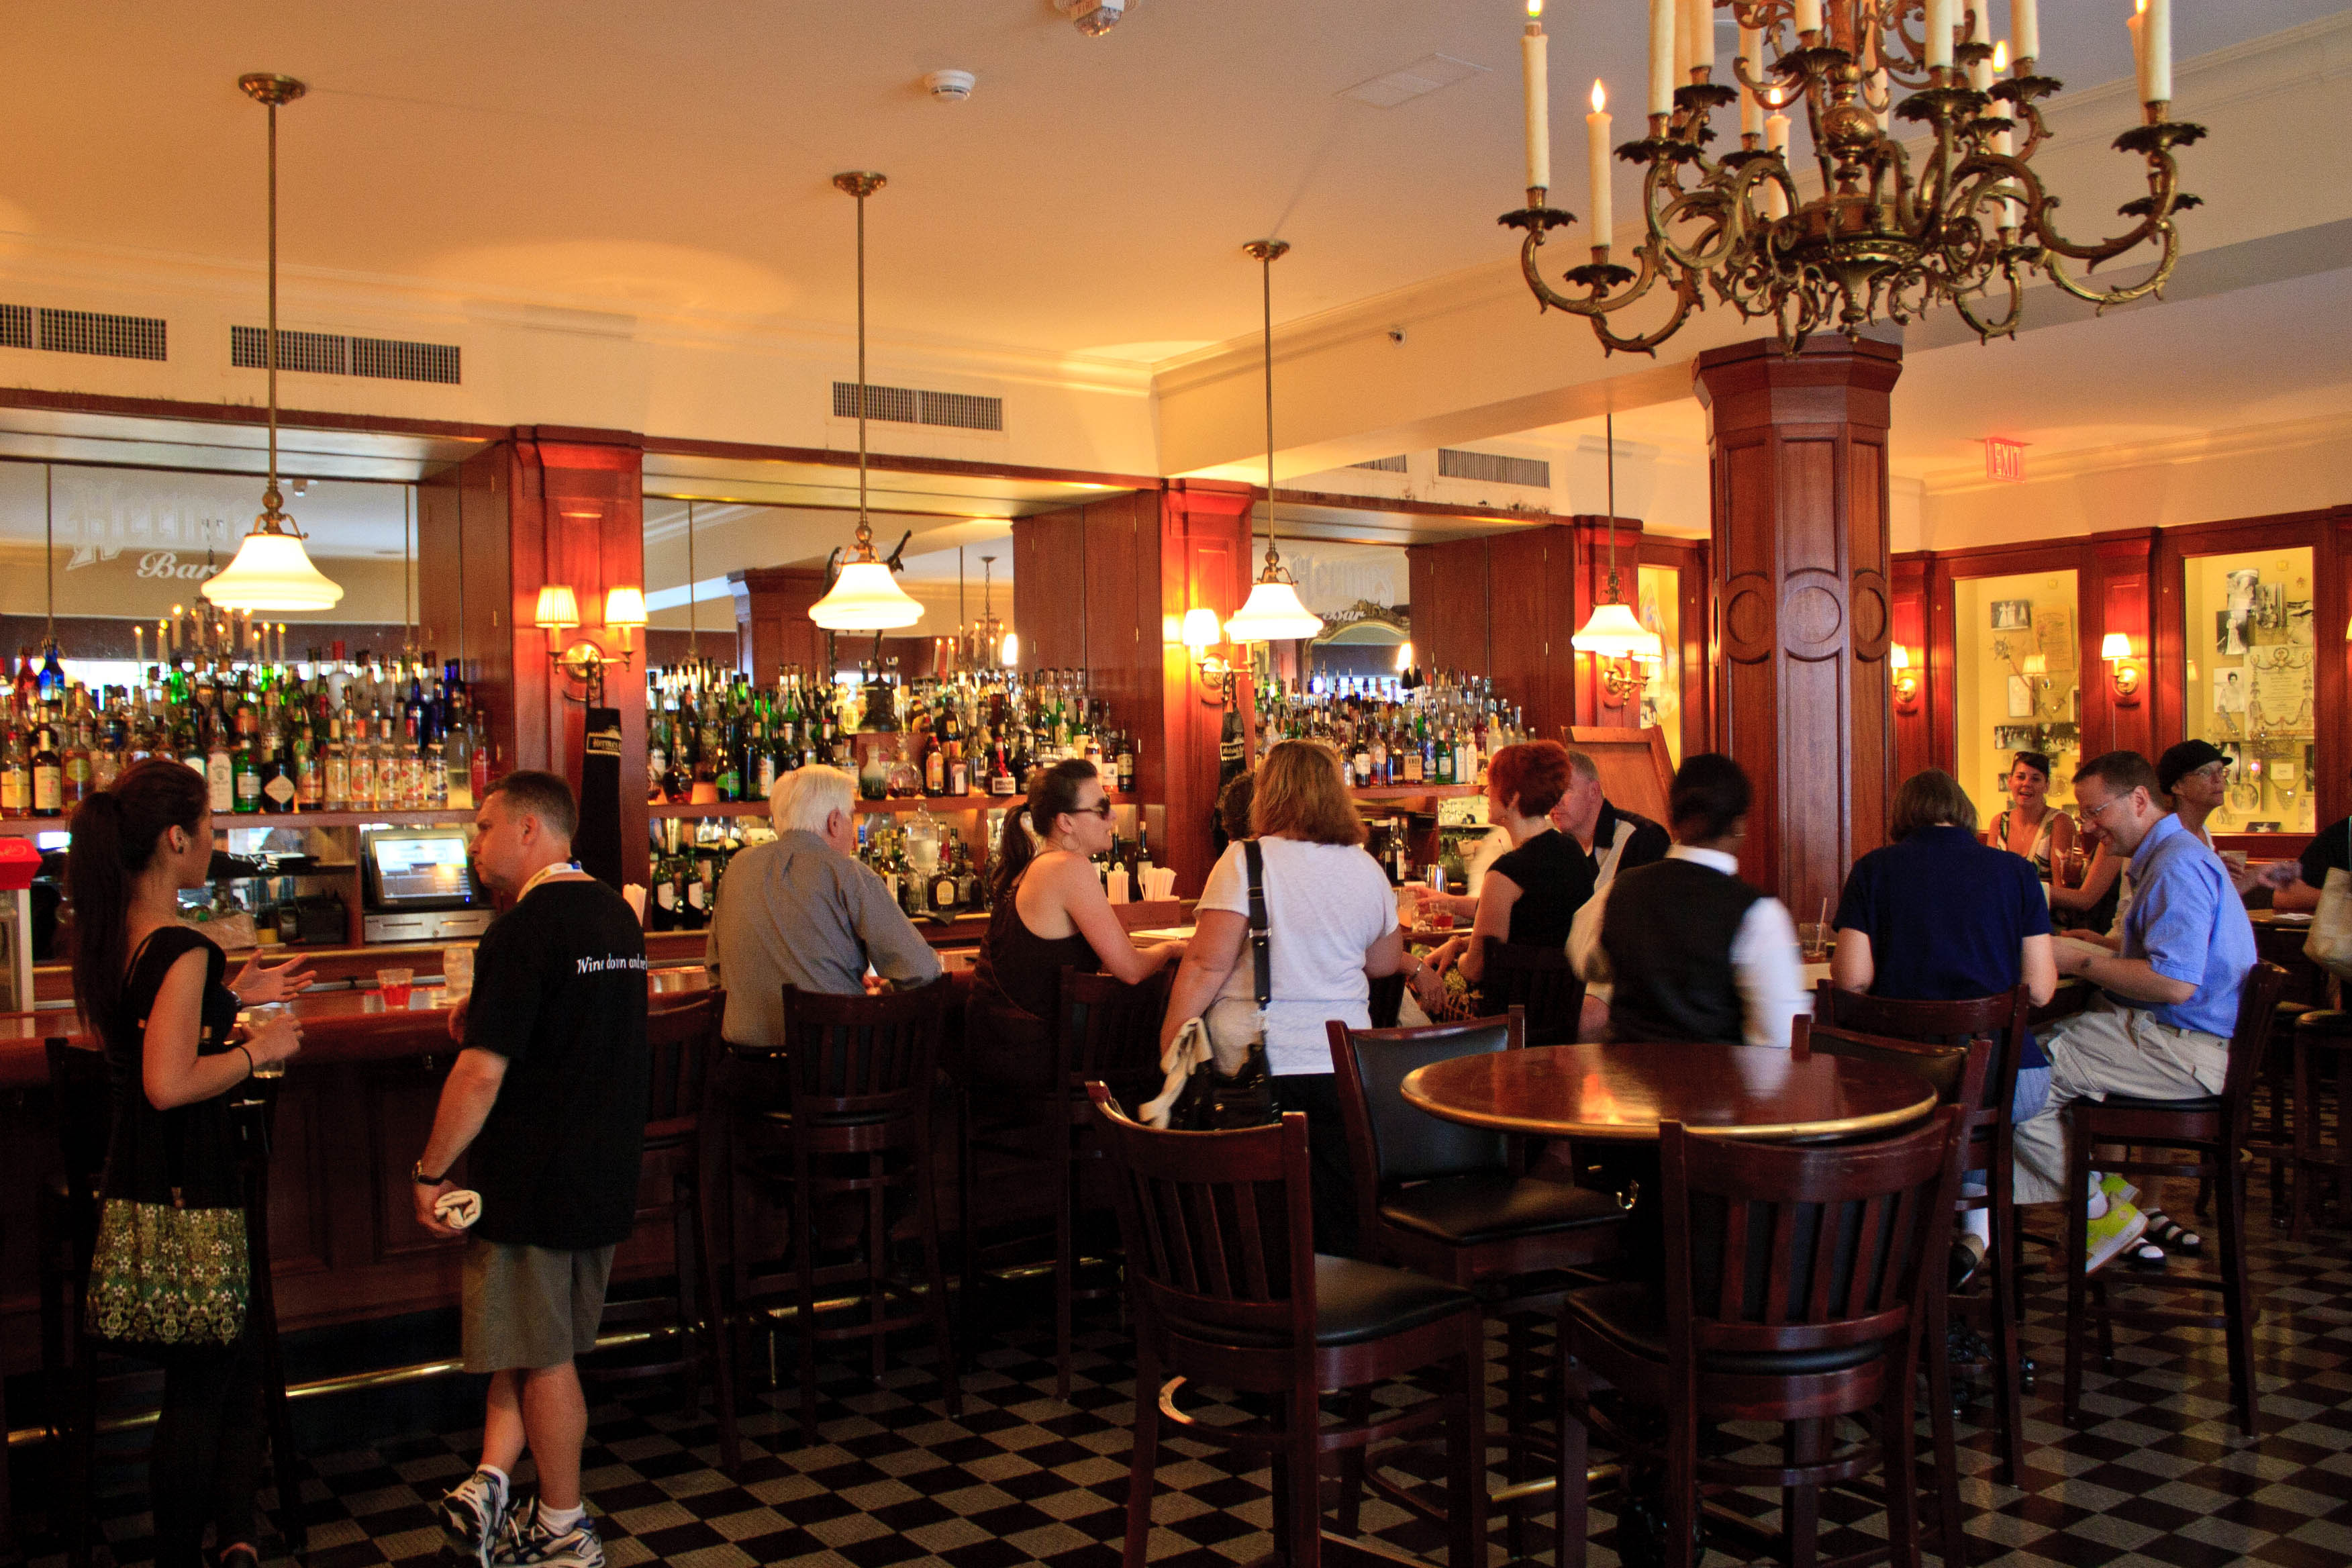 File:Hermes Bar at Antoines.jpg - Wikimedia Commons